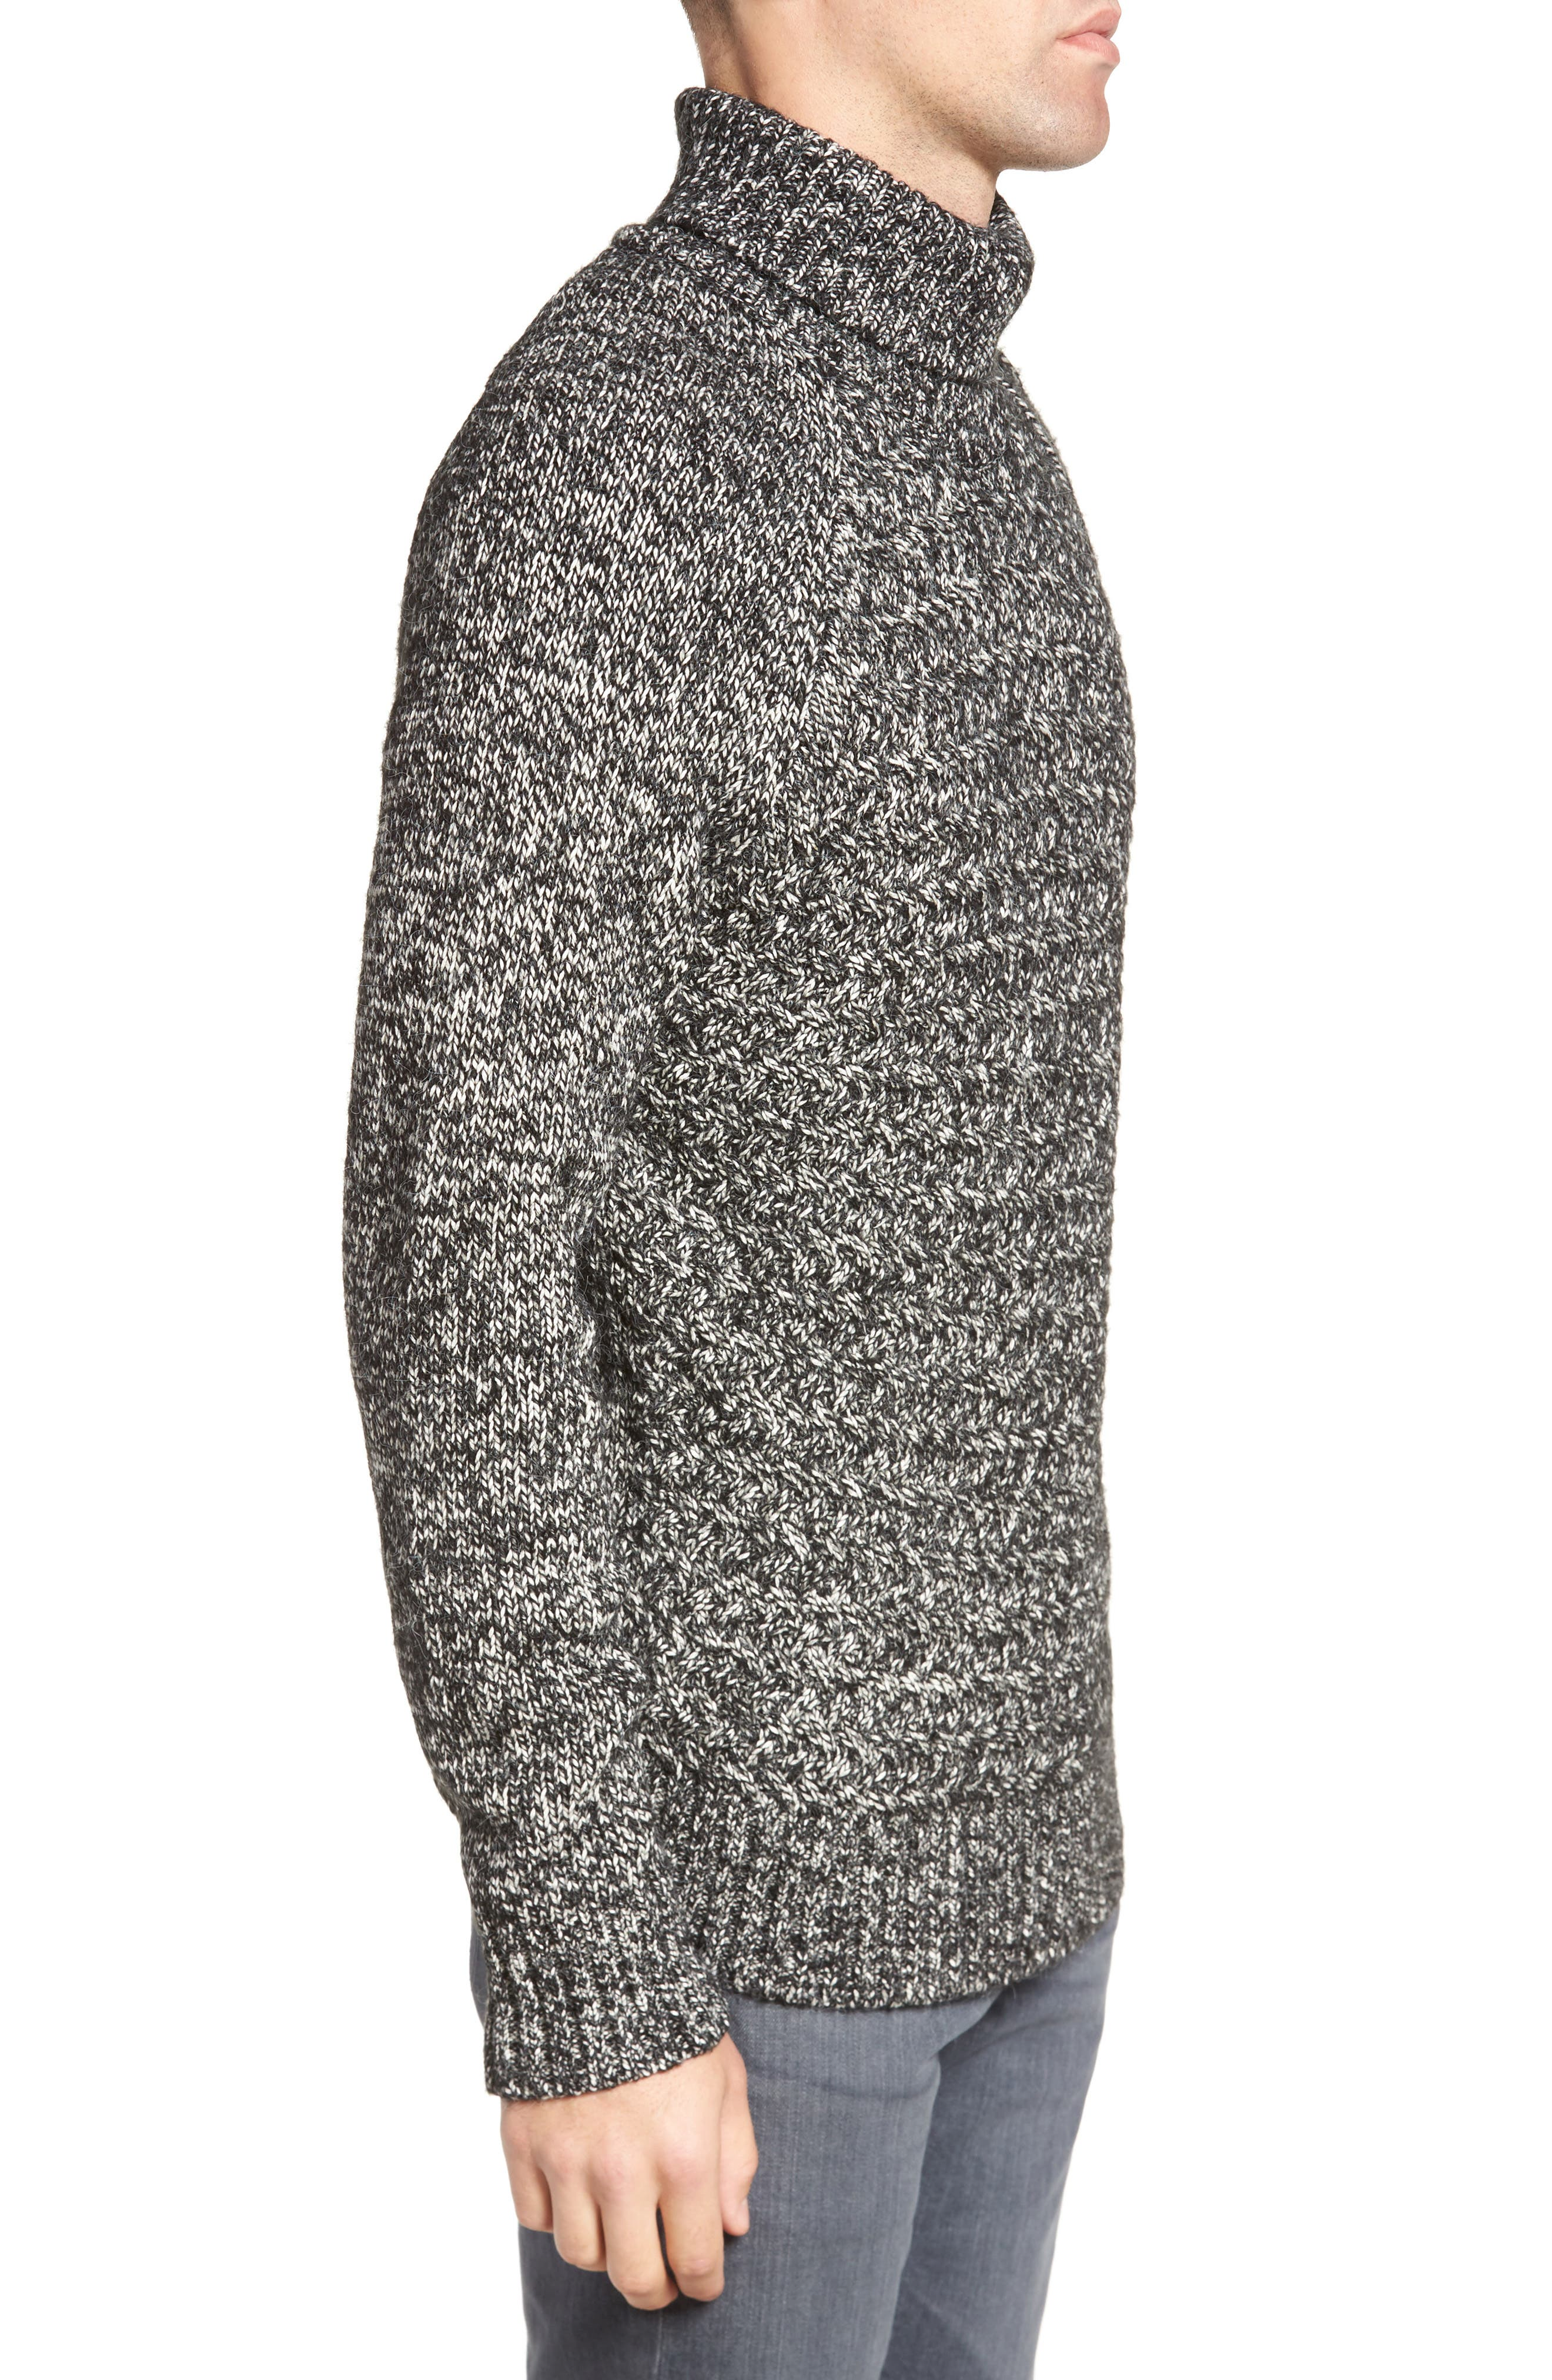 Marled Cable Knit Turtleneck Sweater,                             Alternate thumbnail 3, color,                             001